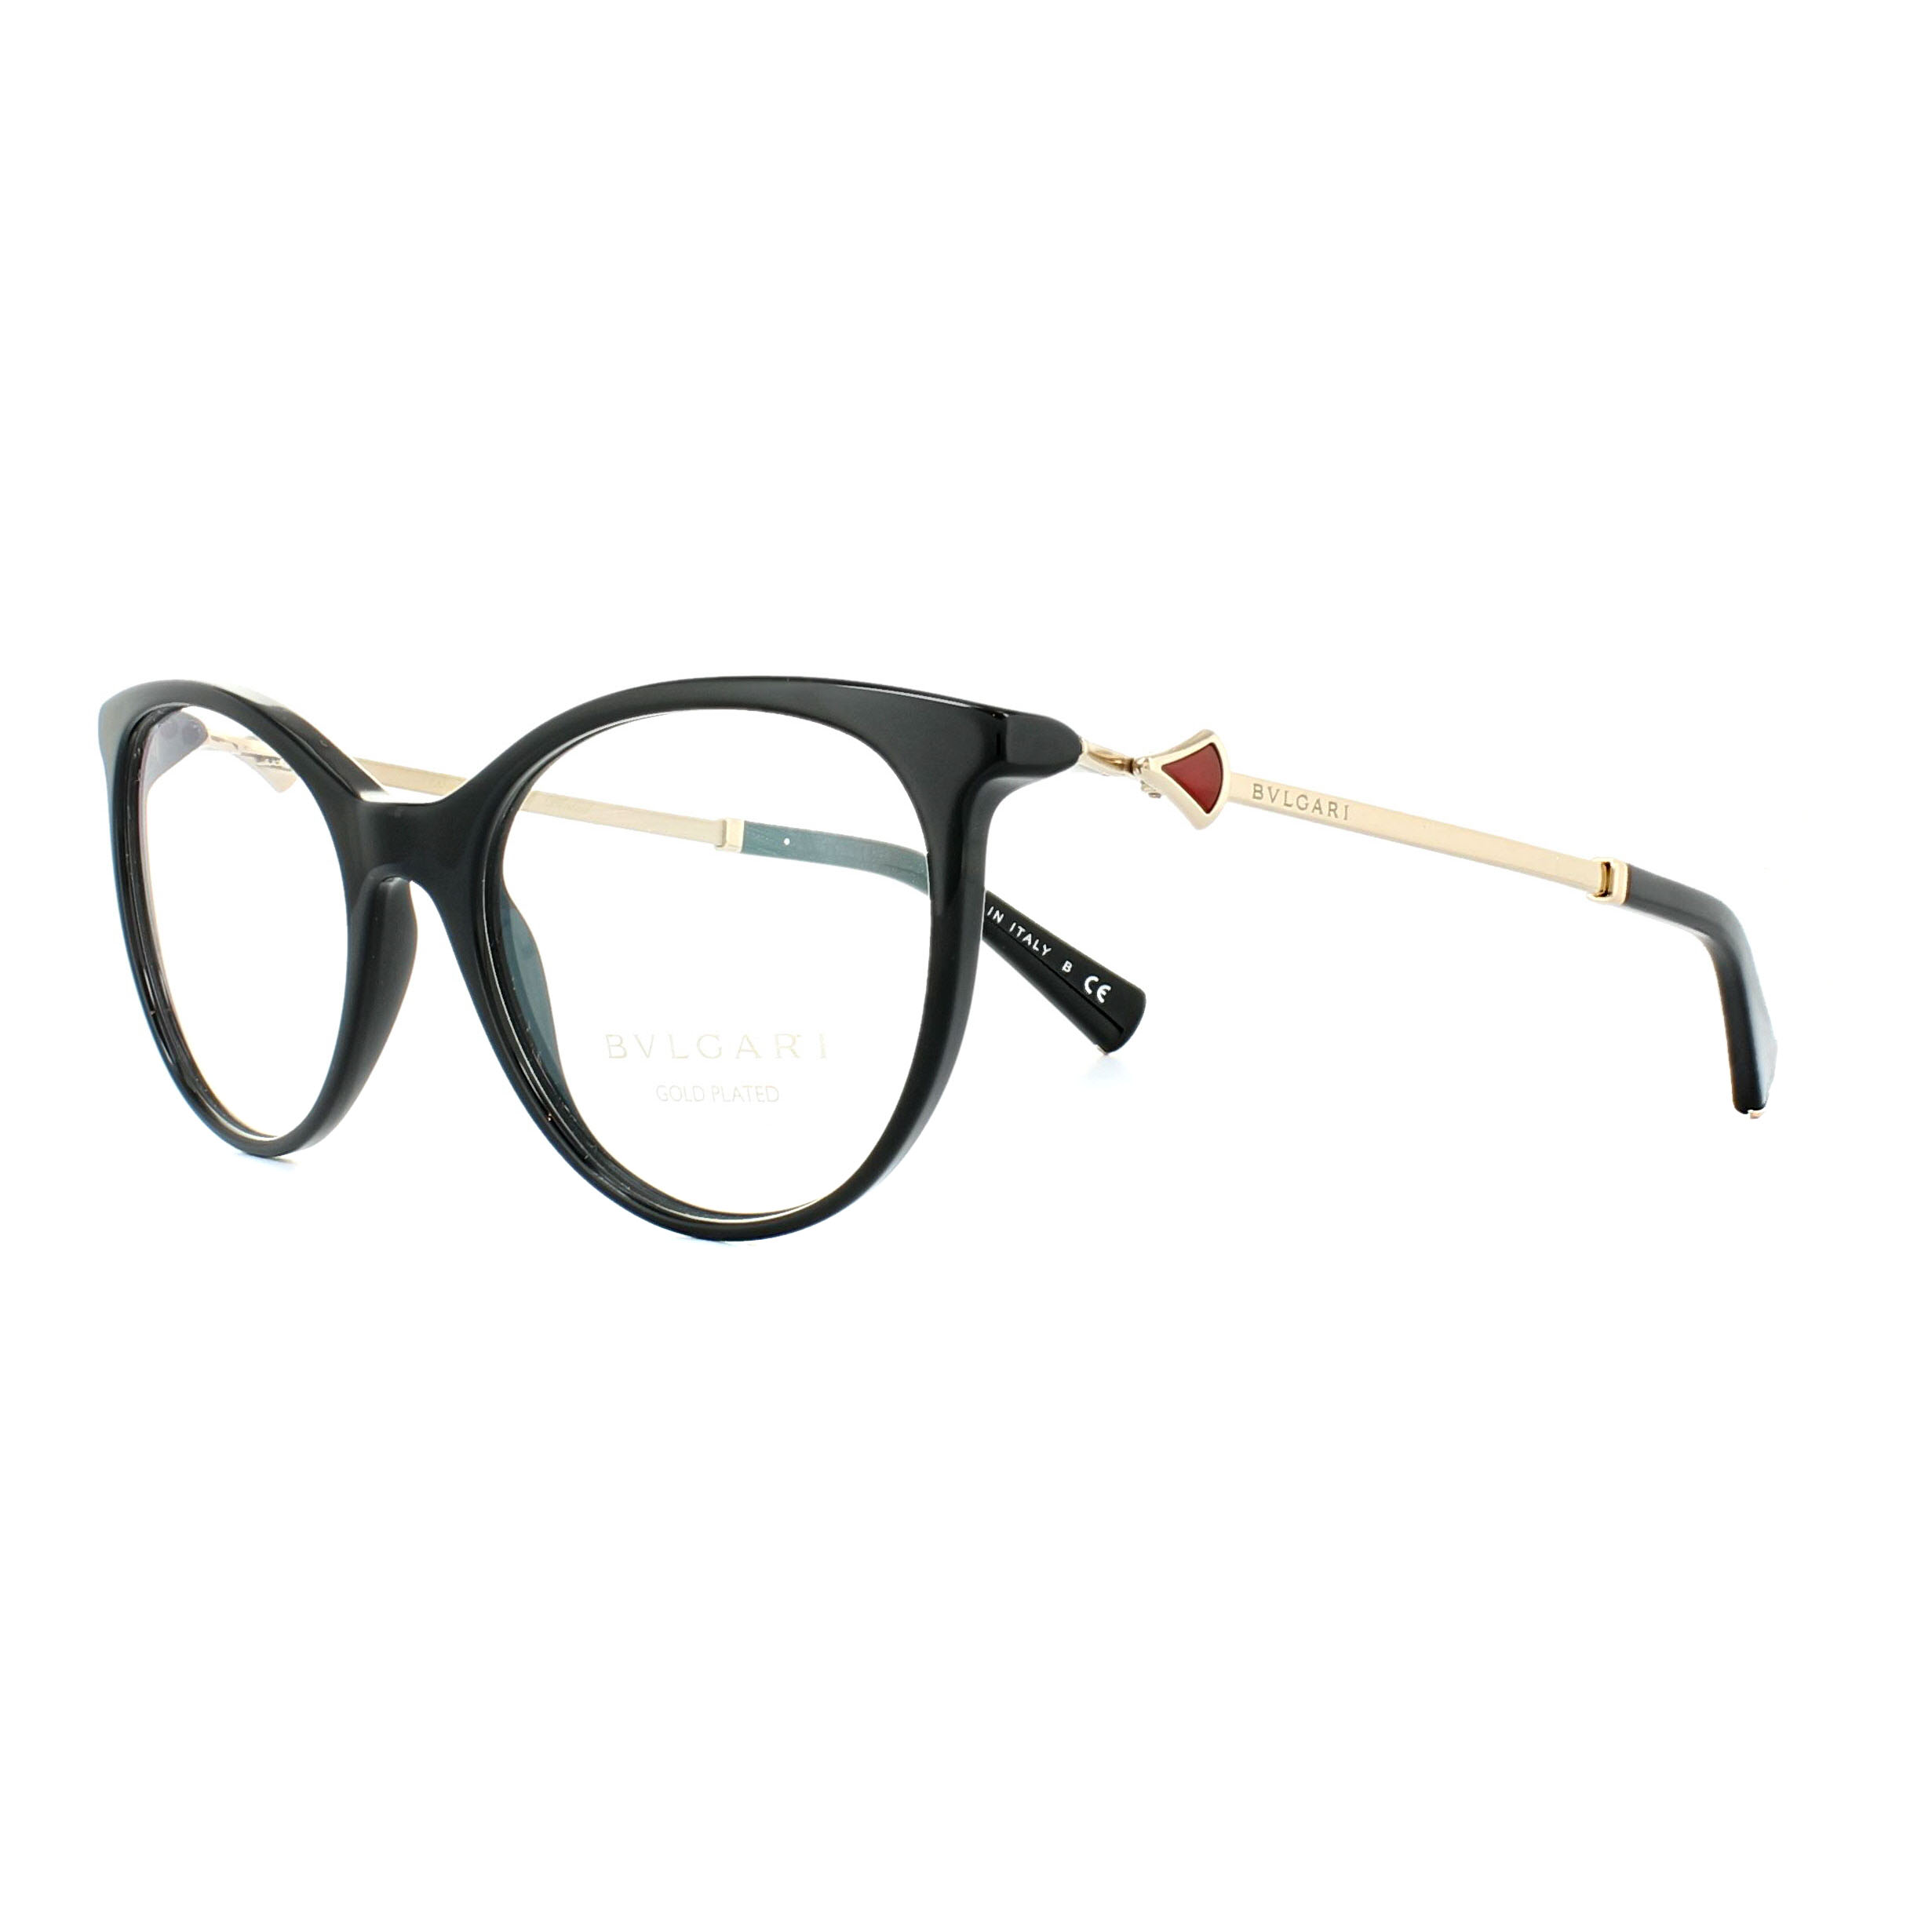 ae8c3eb9334 Sentinel Bvlgari Glasses Frames 4149KB 5195 Black Gold Red 54mm Womens